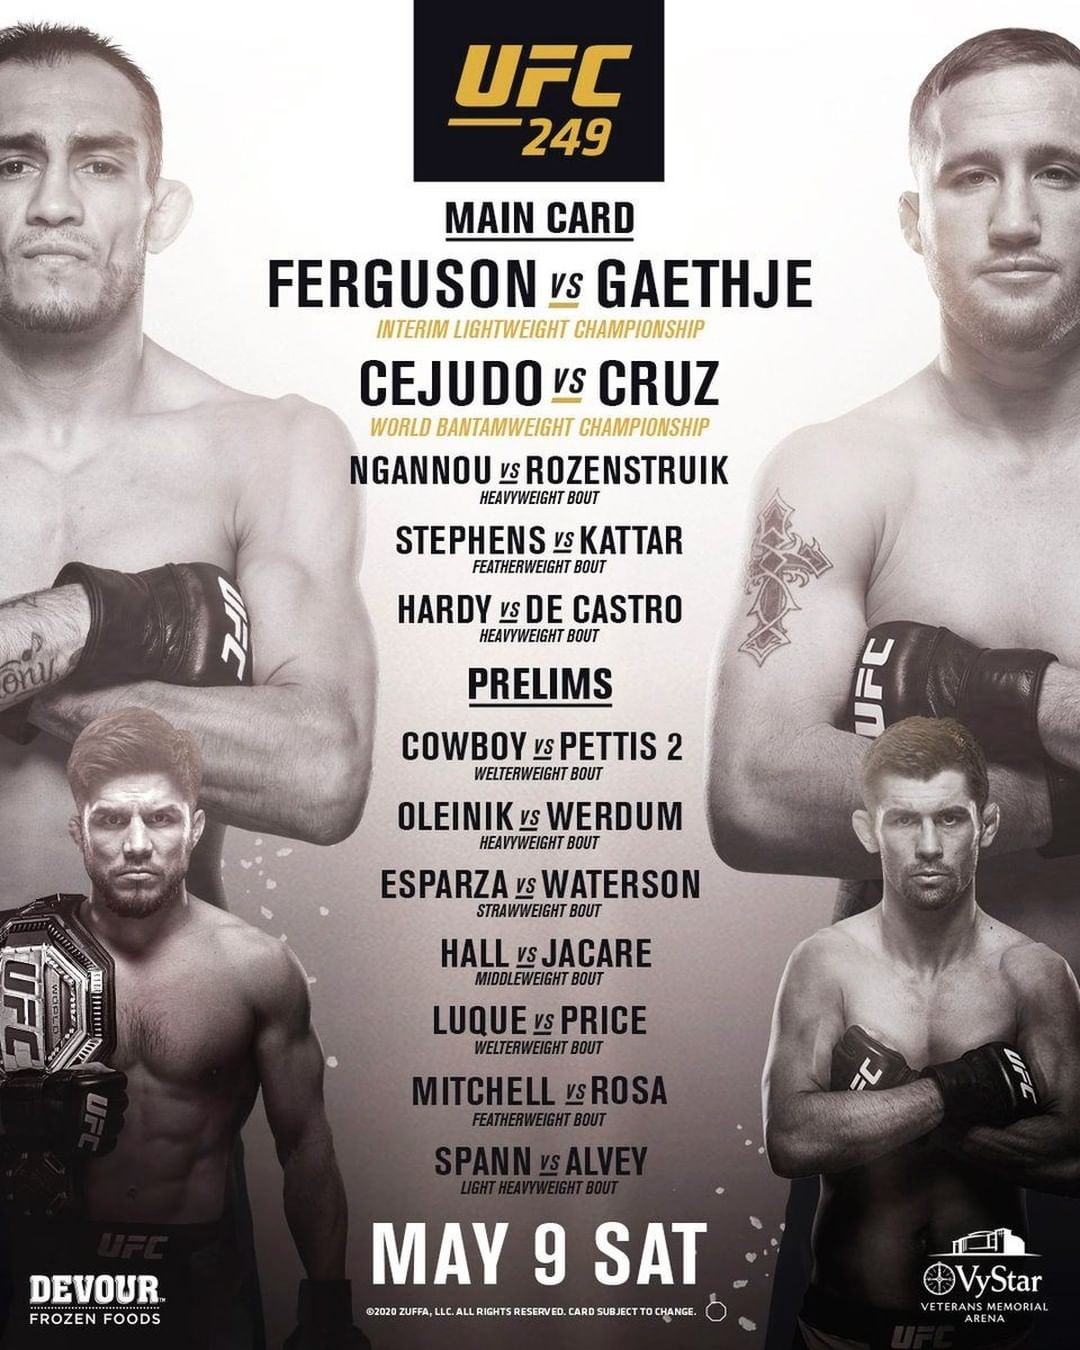 UFC 249 results poster